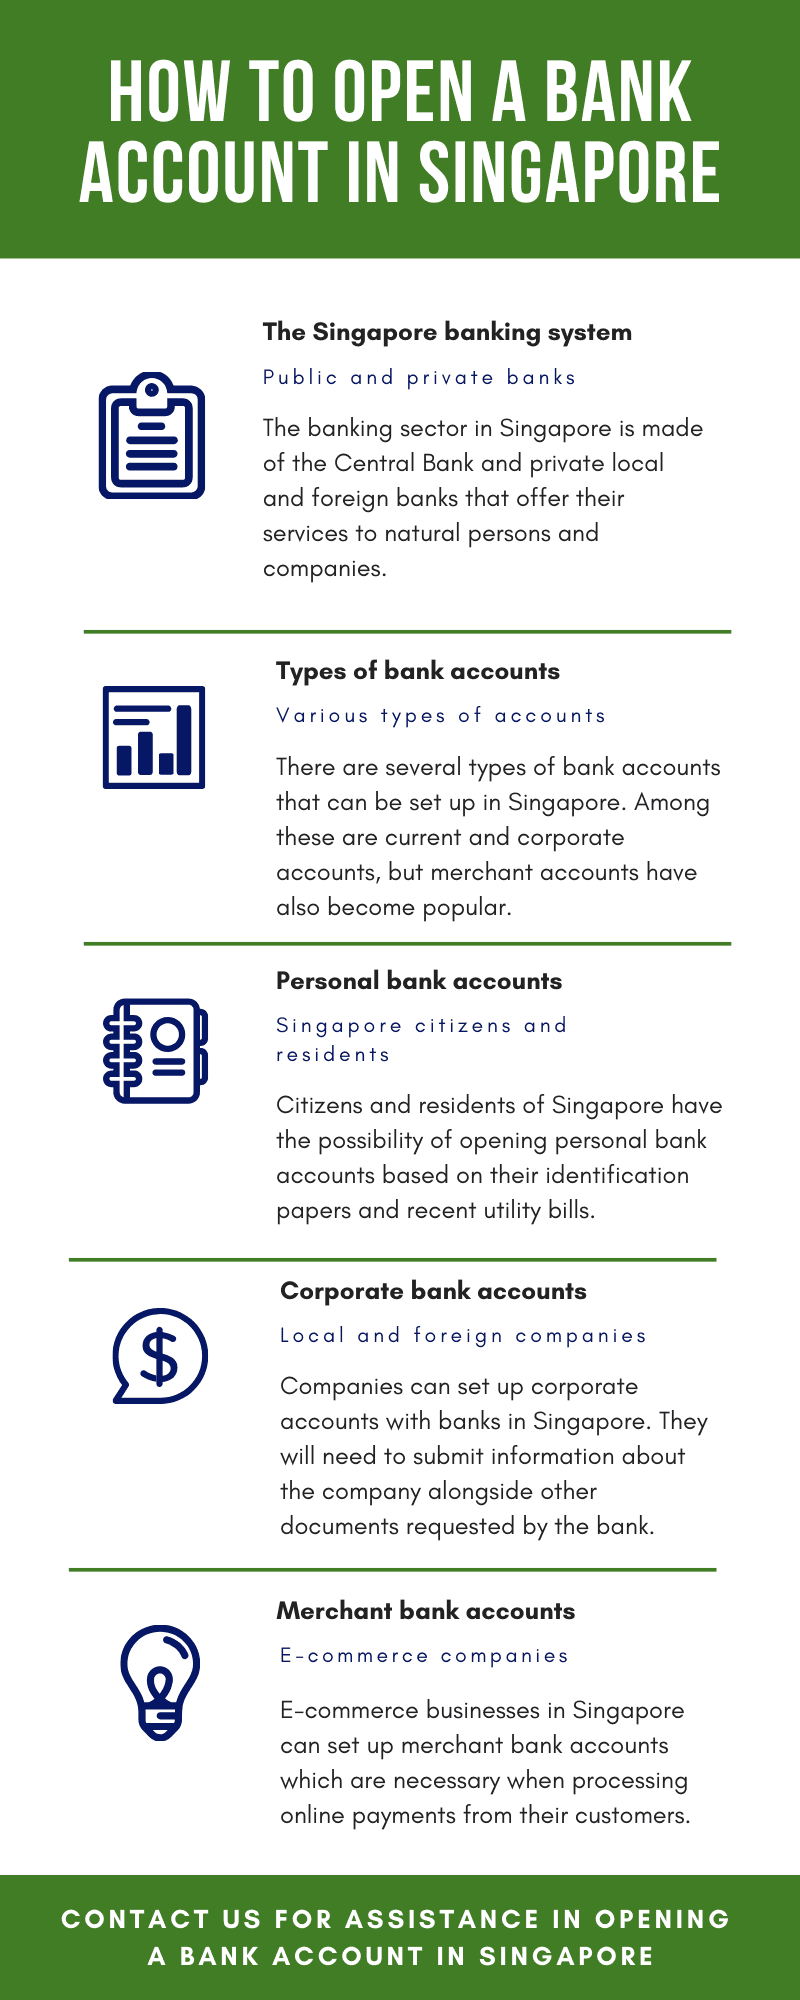 How to open a bank account in Singapore